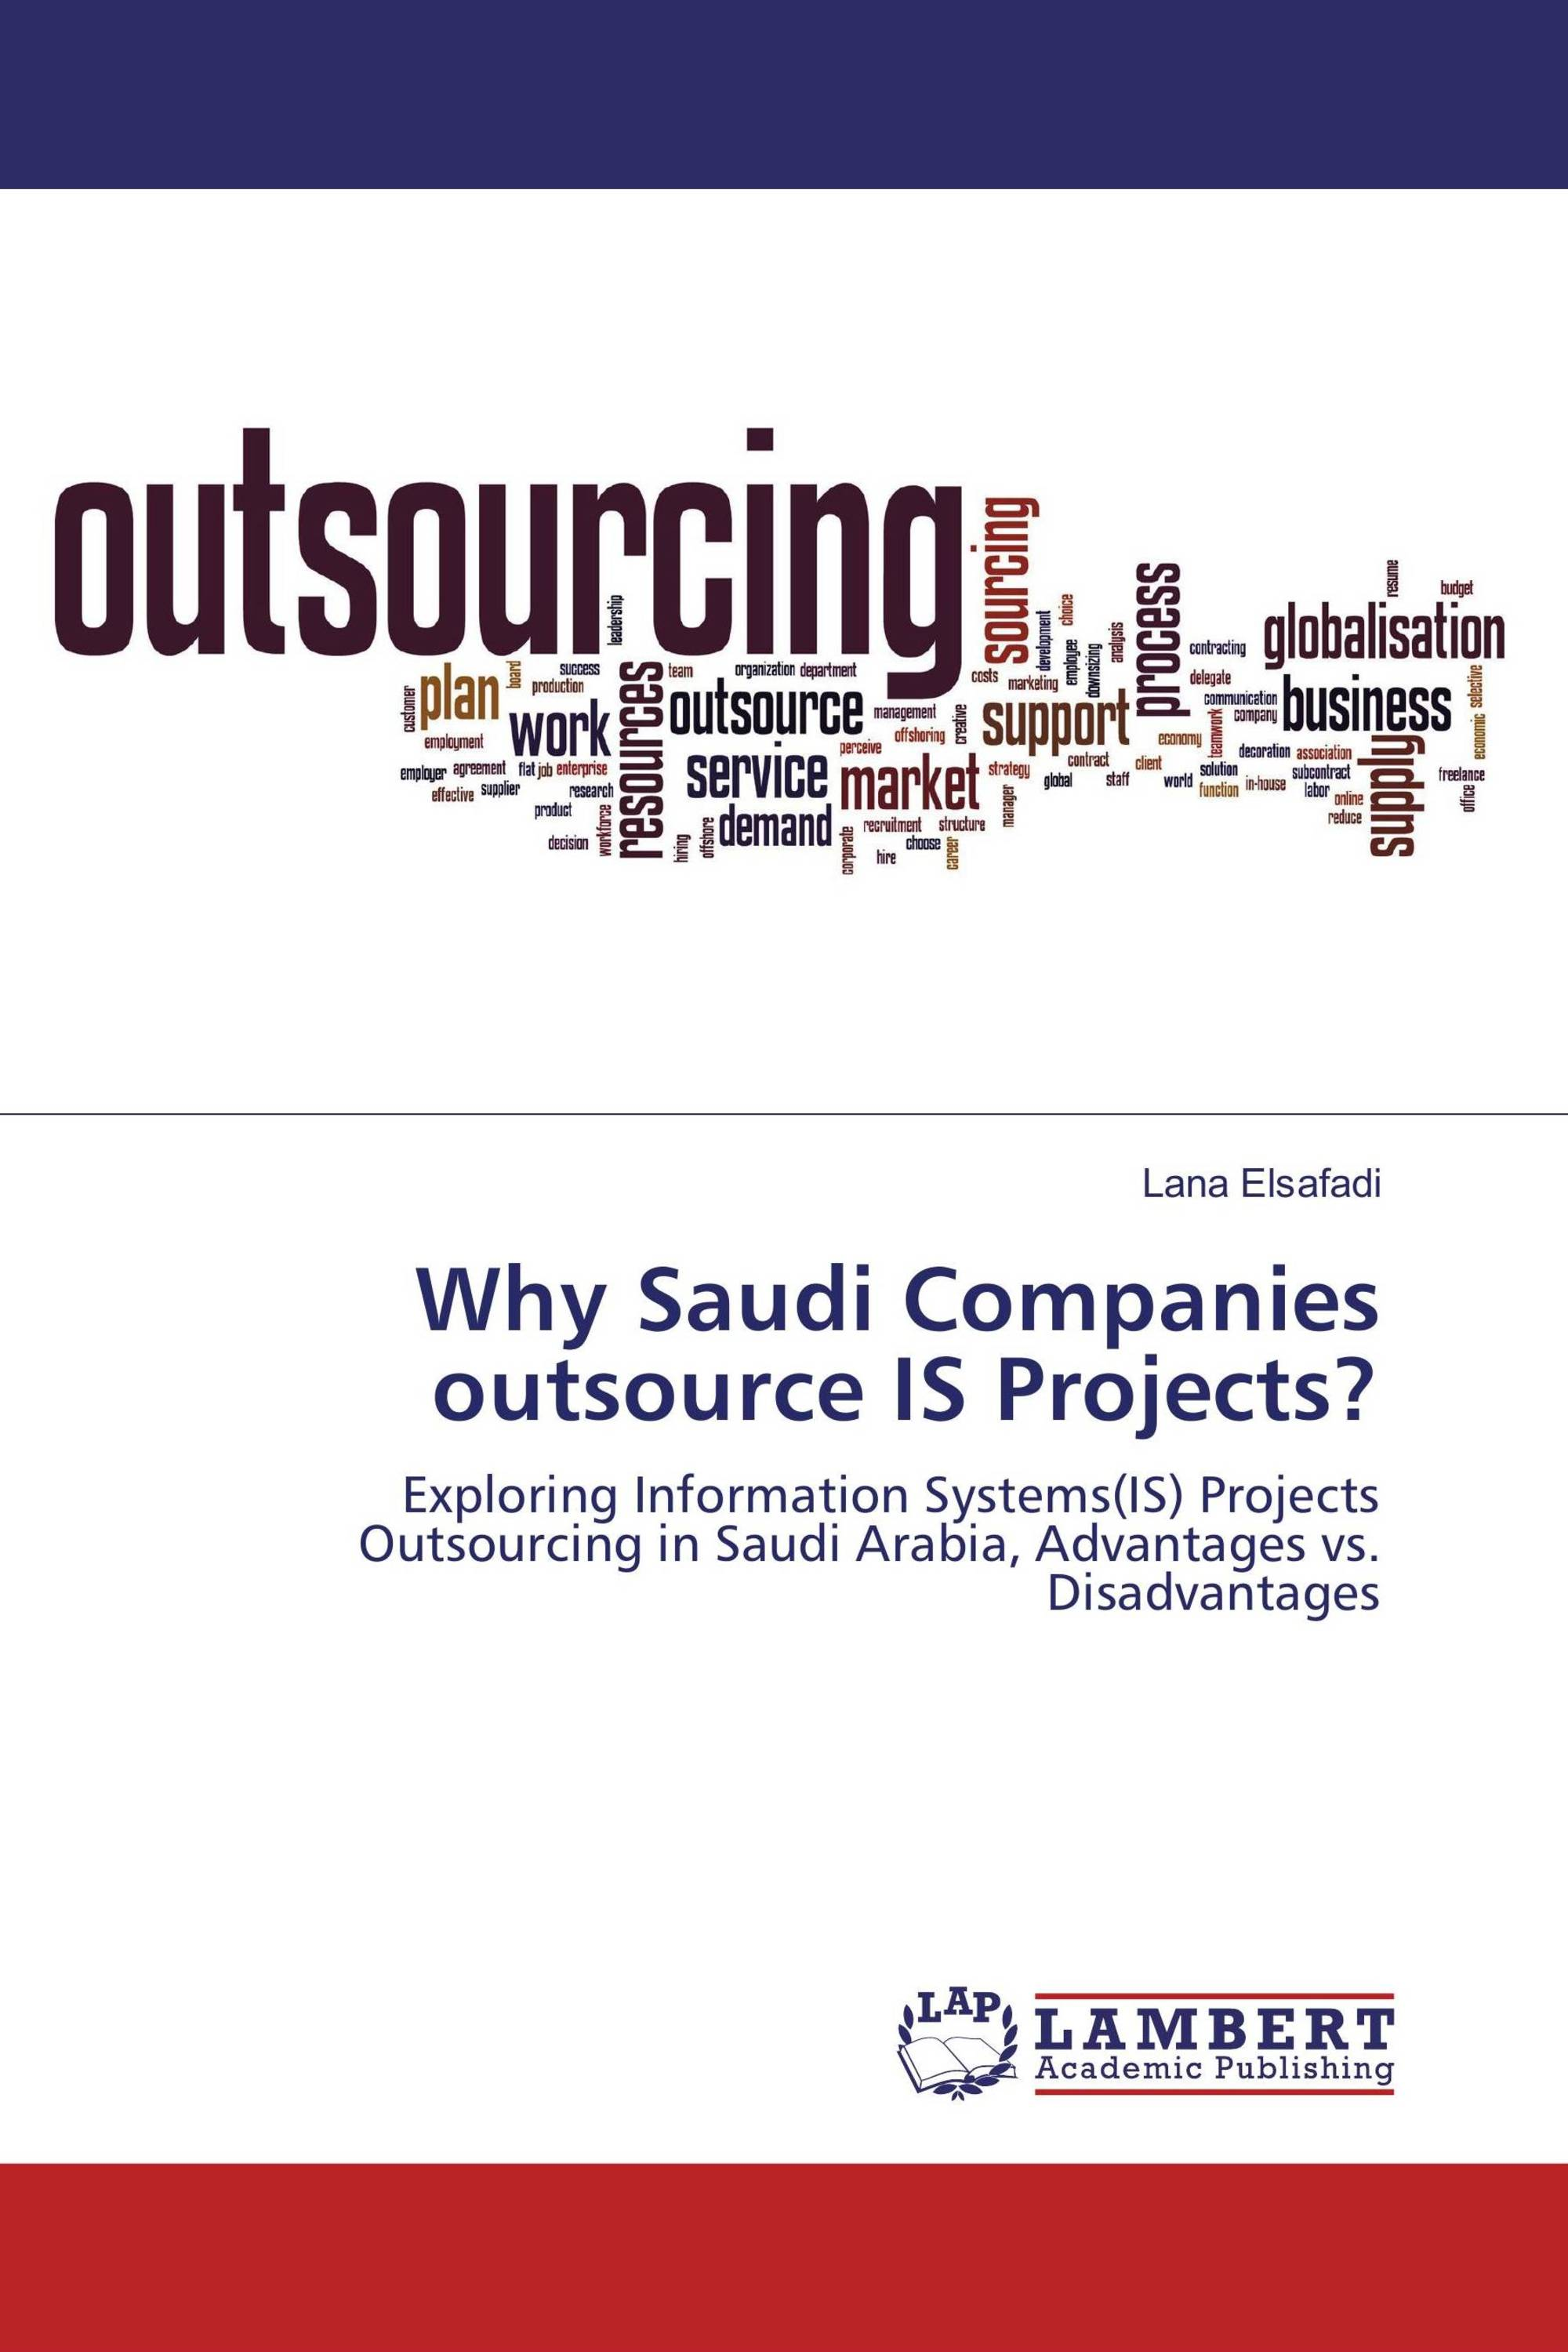 Why Saudi Companies outsource IS Projects?